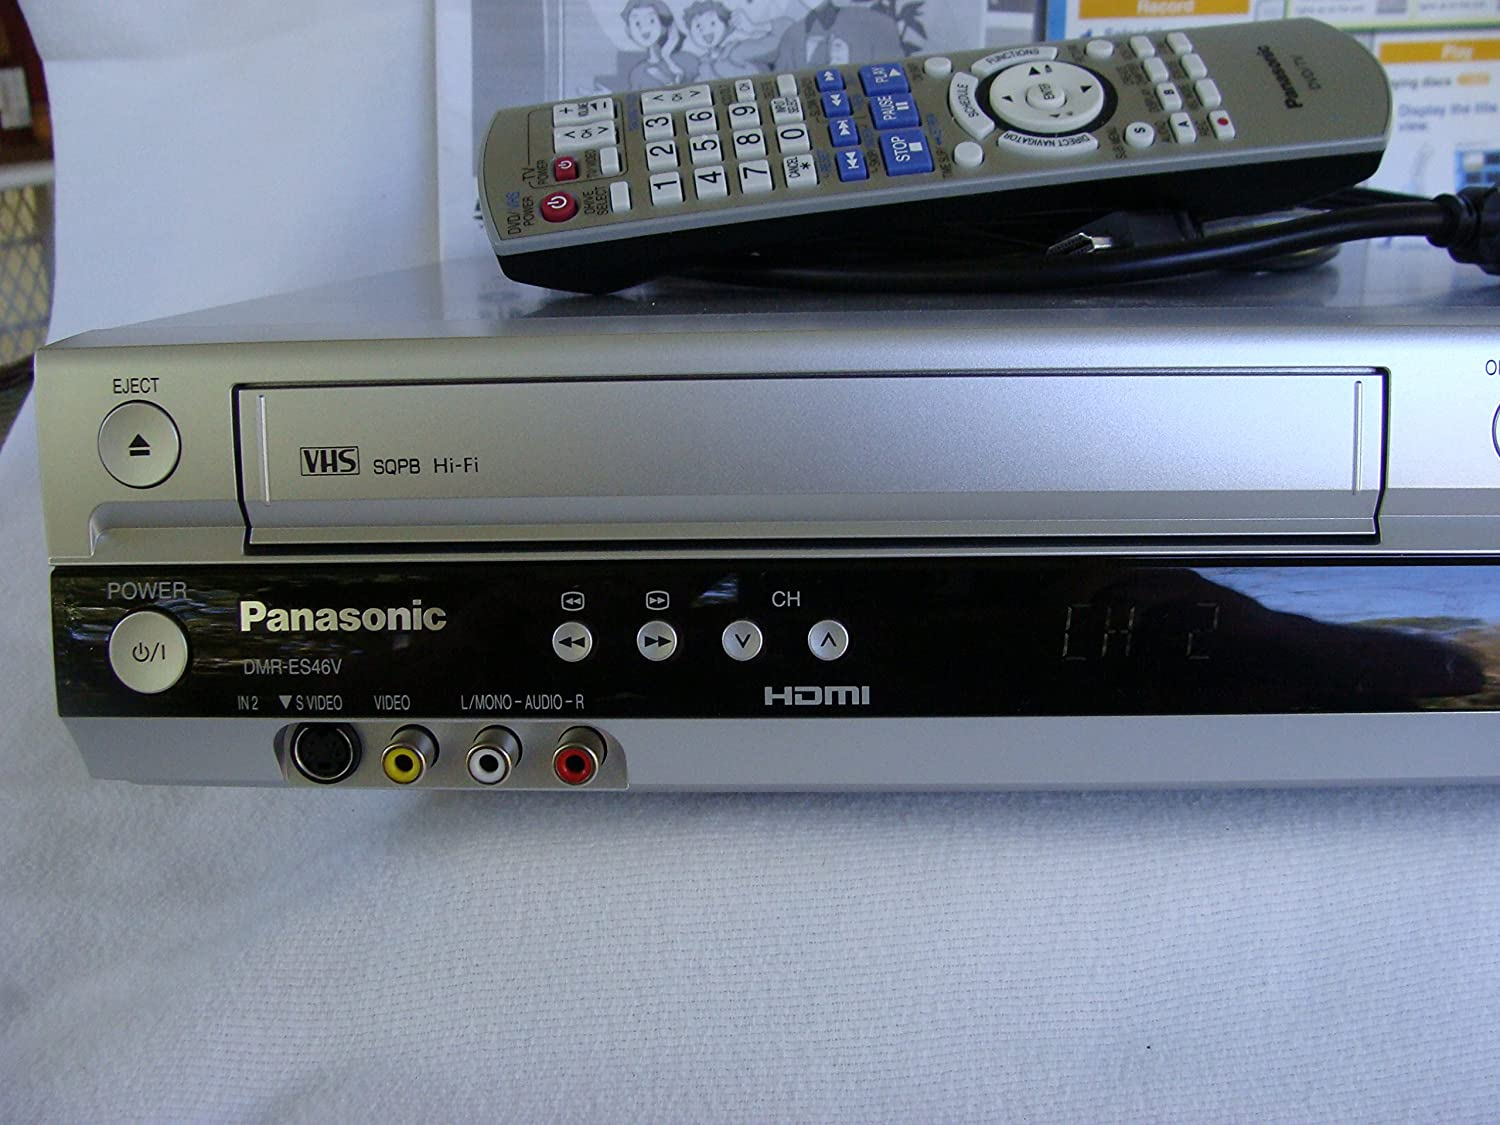 amazon com panasonic dmr es46vs vhs dvd recorder silver electronics rh amazon com Panasonic DMR- EZ48V Panasonic DMR Recorders